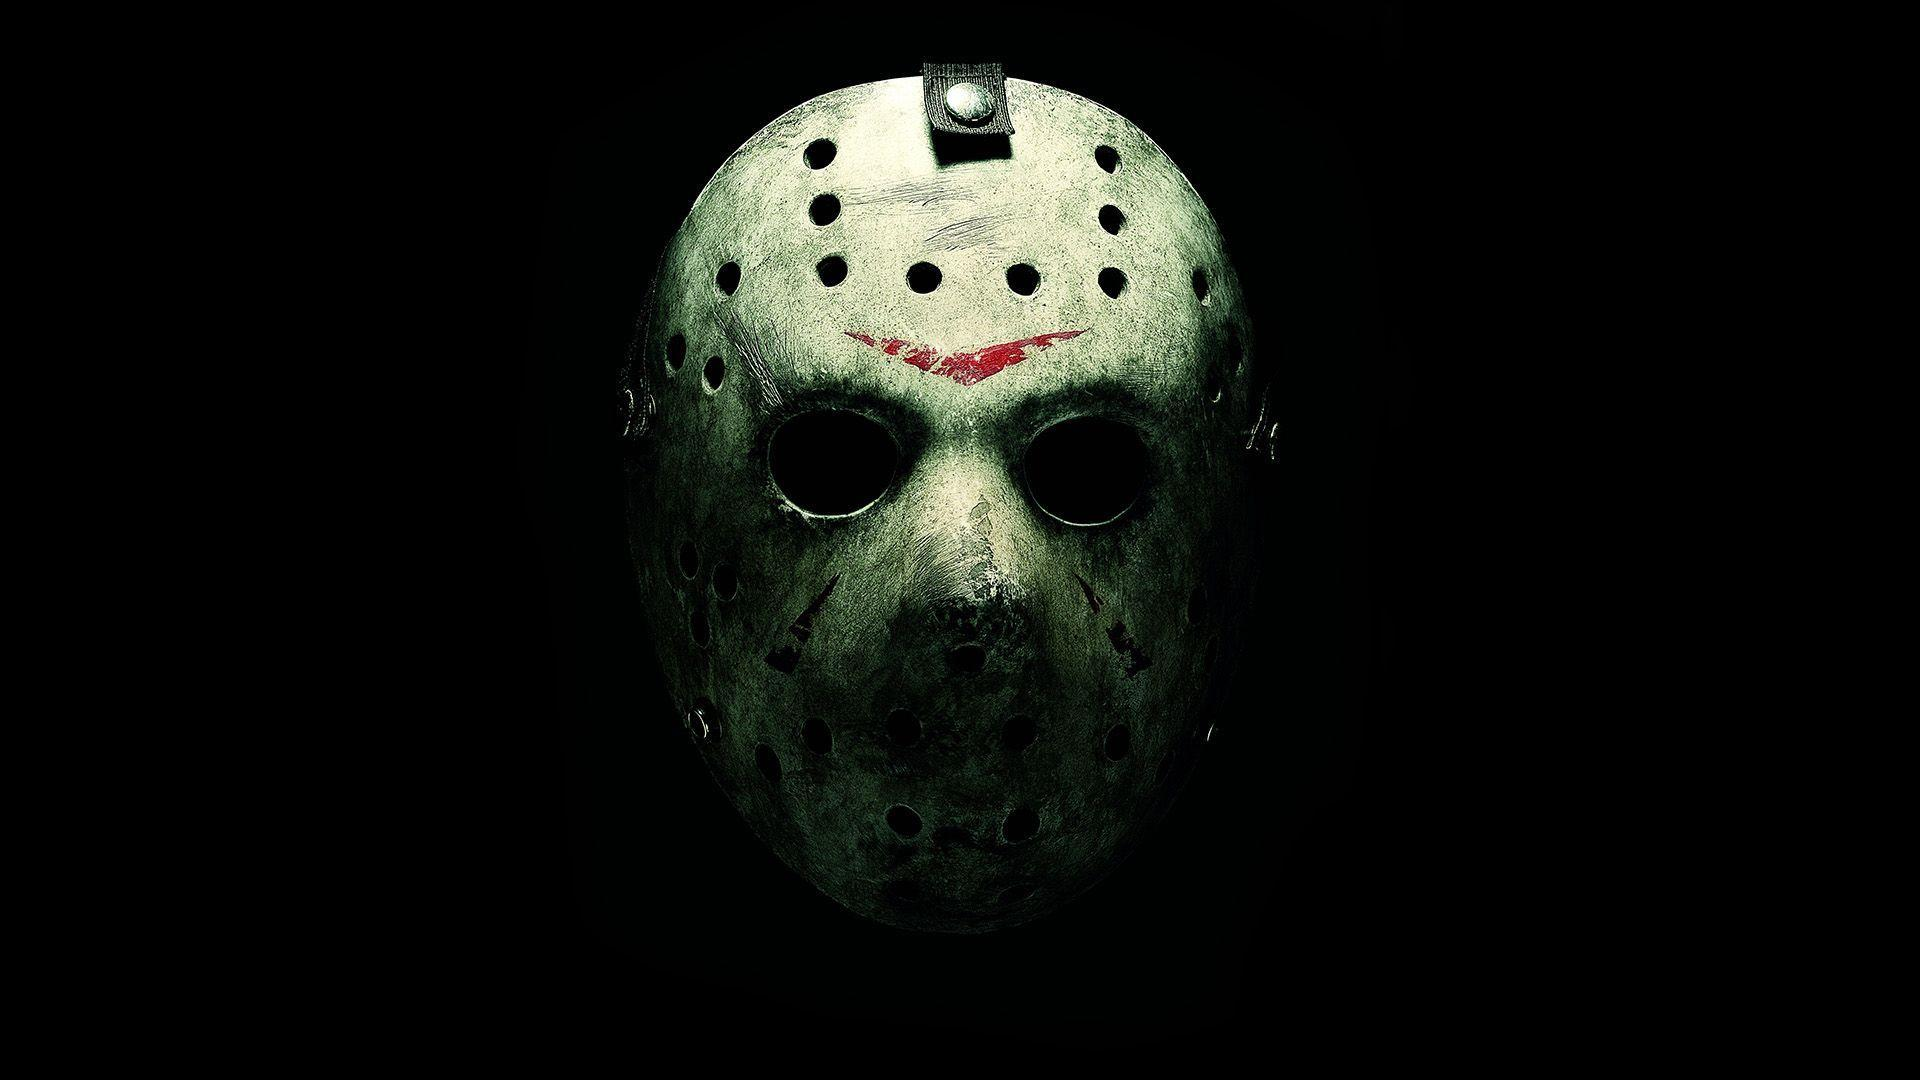 Jason Friday the 13th Wallpaper - WallpaperSafari